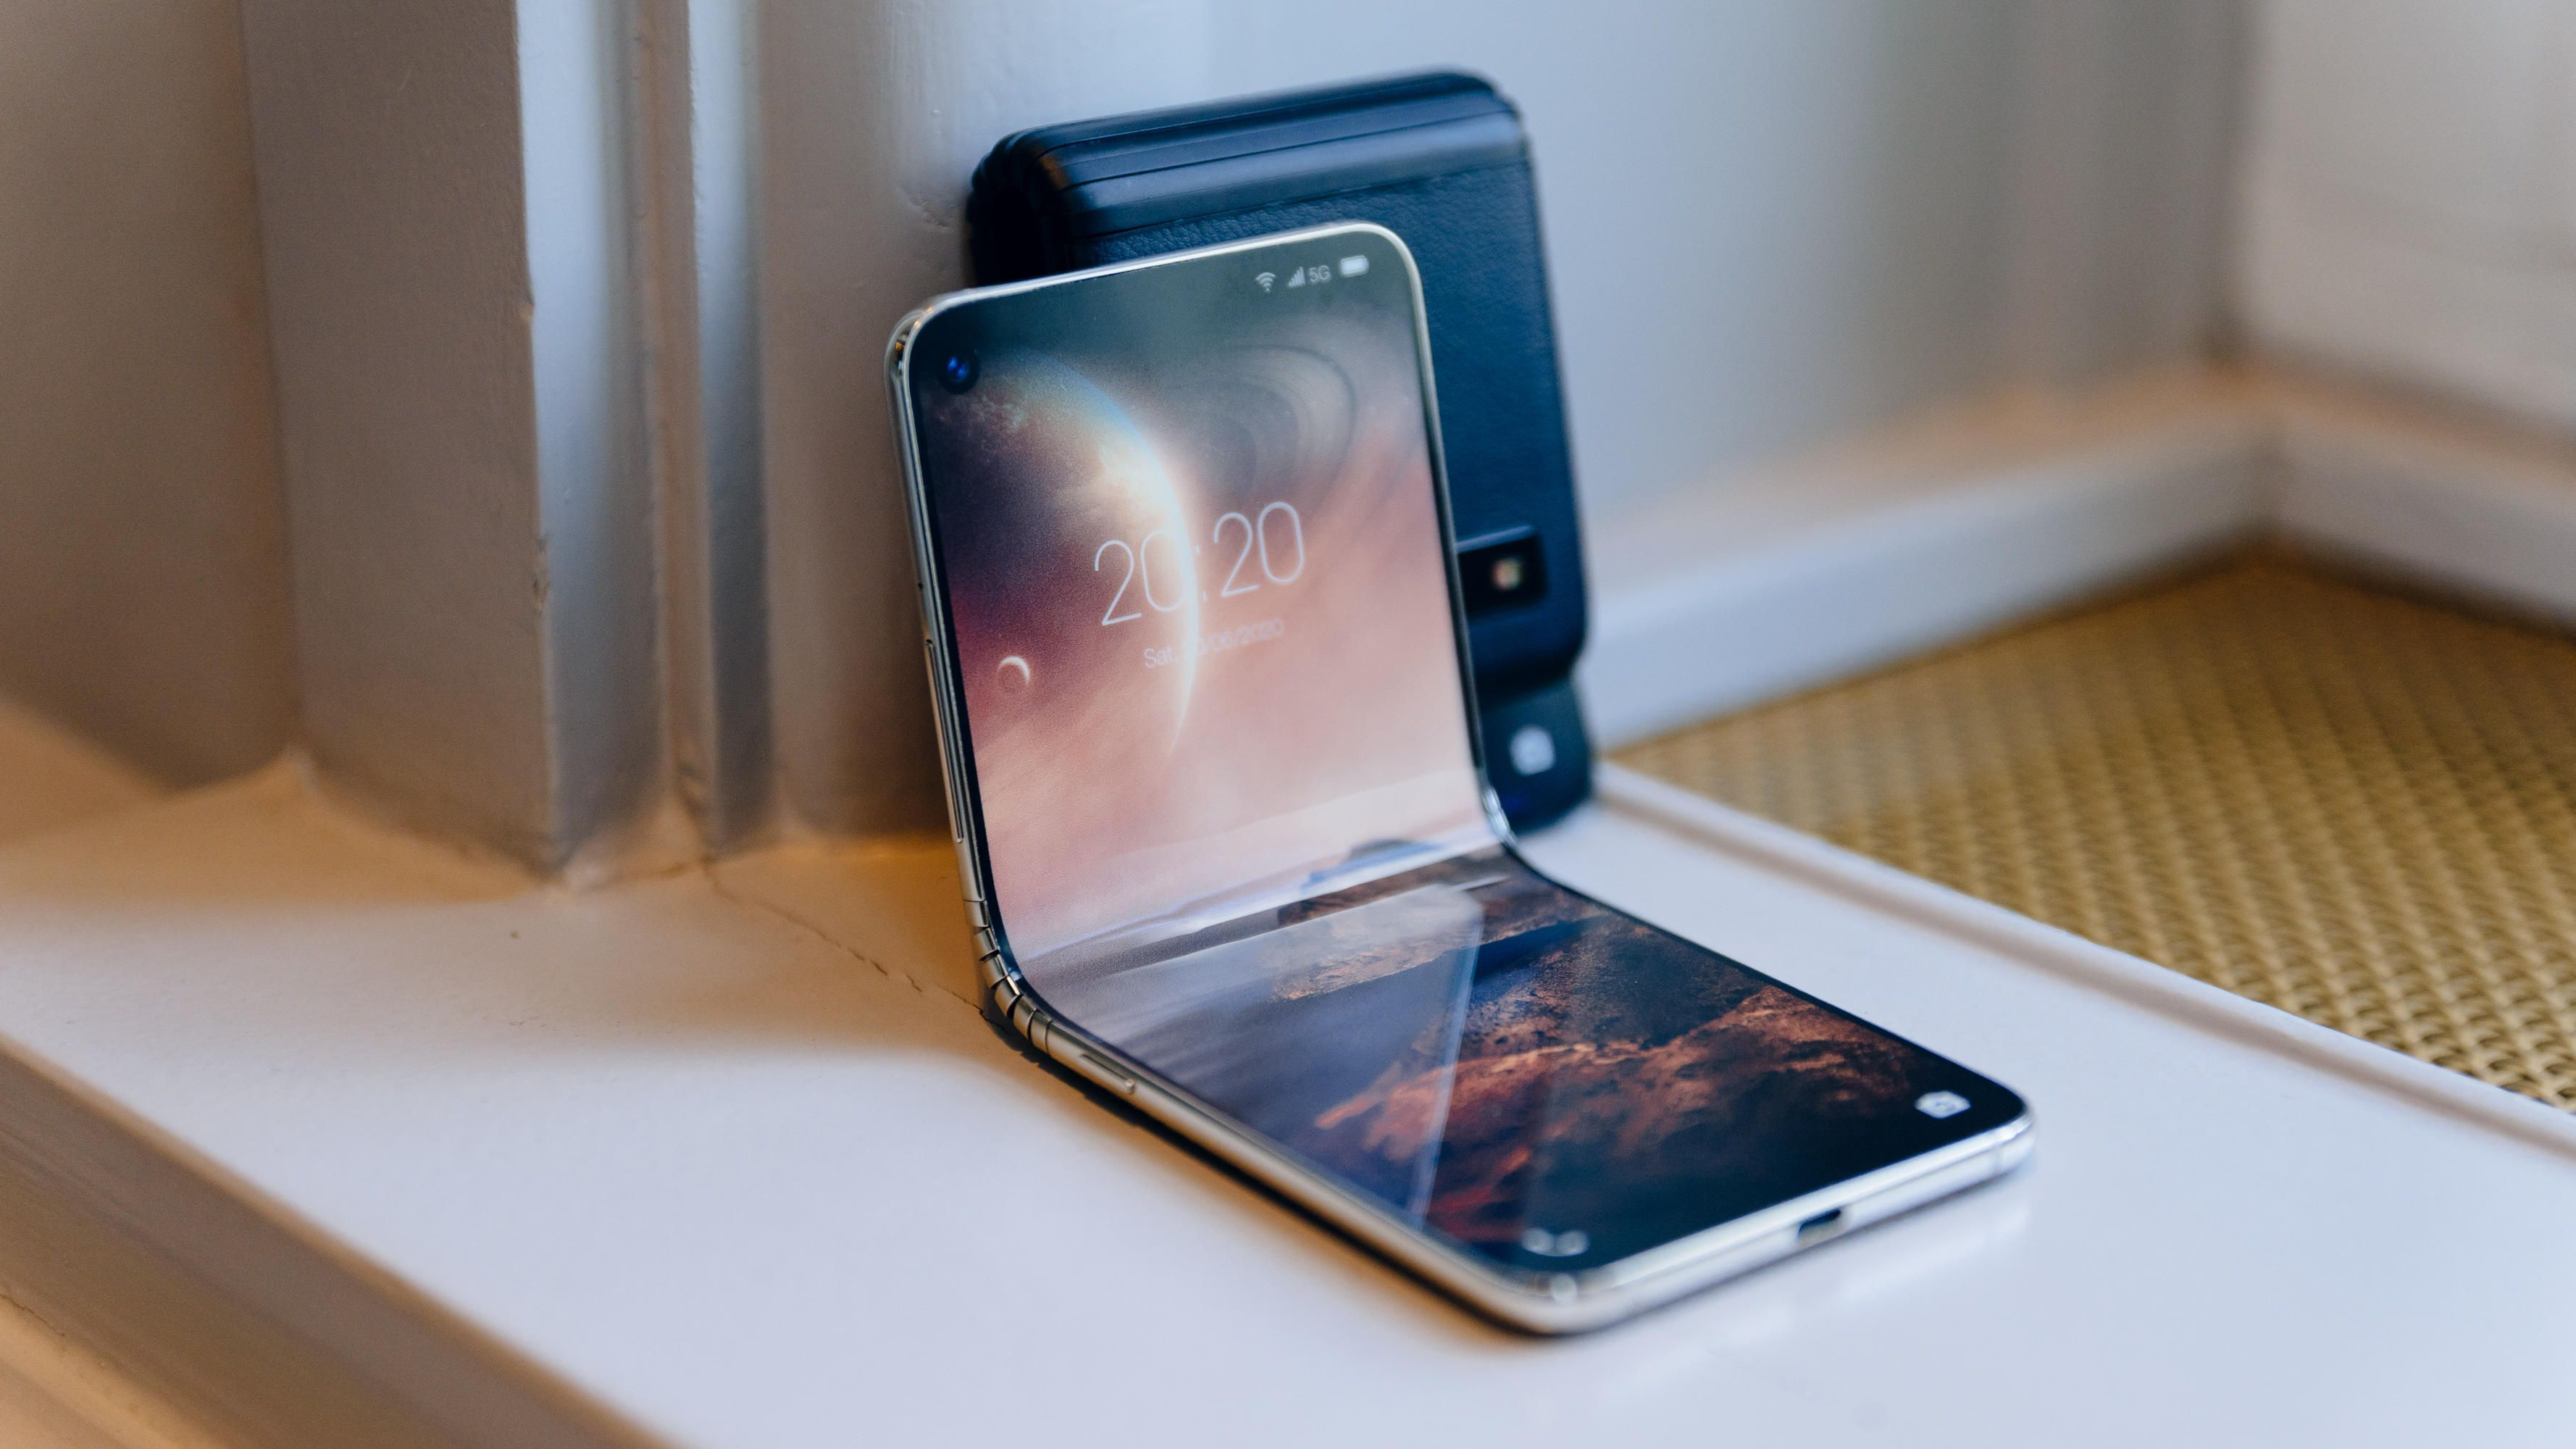 Samsung Galaxy Fold 2 Design Concept With Rotating Camera Specificationsprice Launch Date 6 6inch Amoled Display 8incham Galaxy Concept Design Samsung Galaxy